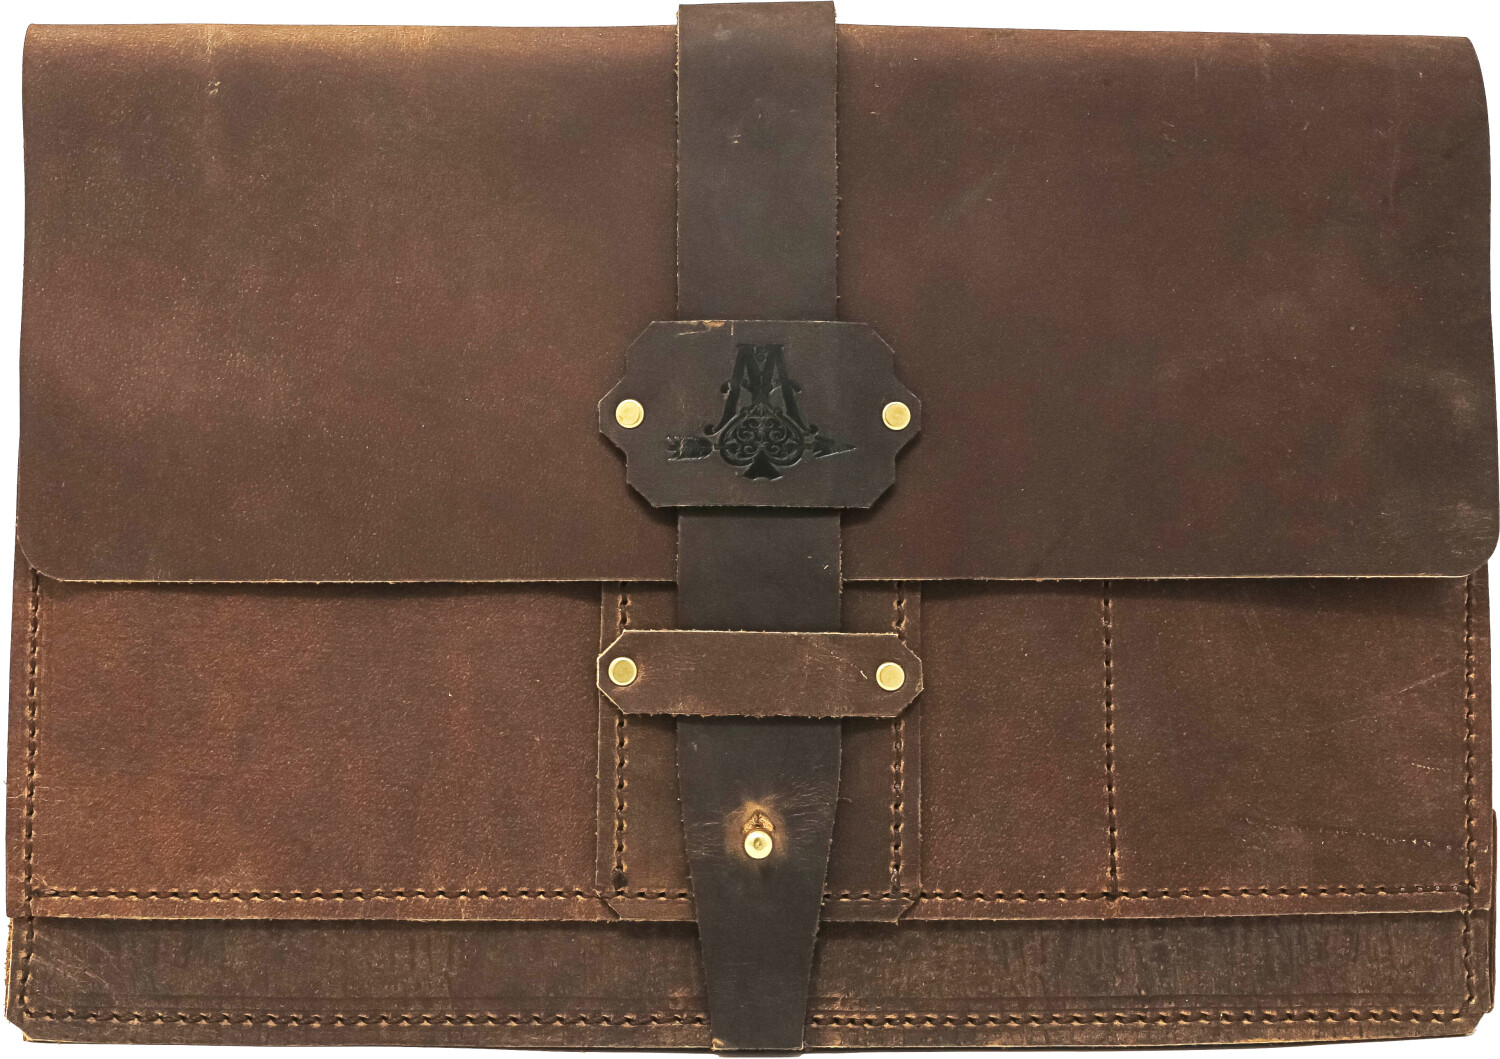 Large Portfolio--Sequoia Series Genuine Leather, Travel, Art, and Important Documents - Brown